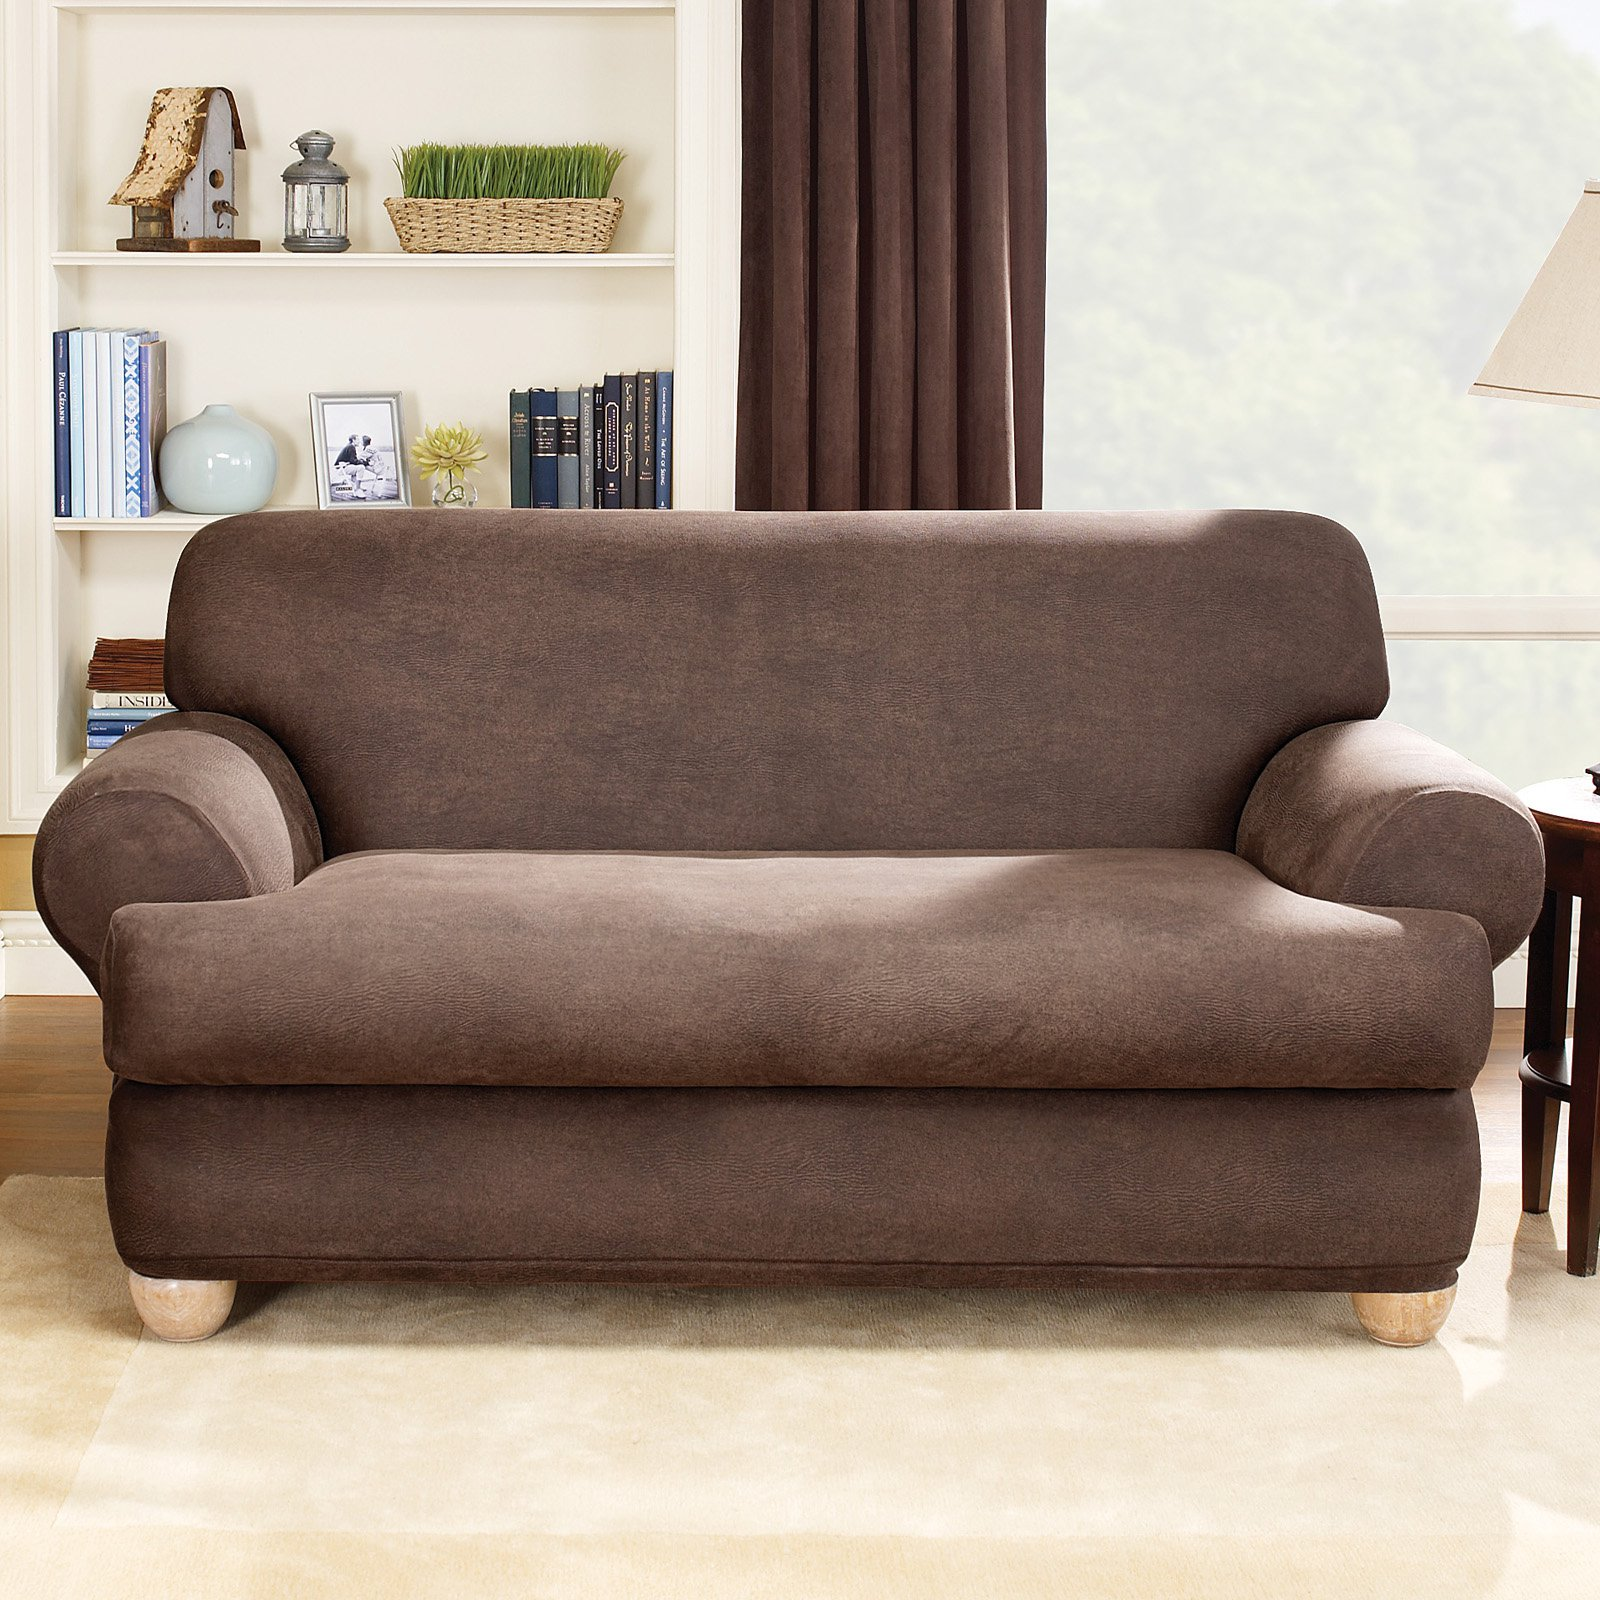 Sure Fit Stretch Leather 2 Piece T Cushion Sofa Slipcover, Brown